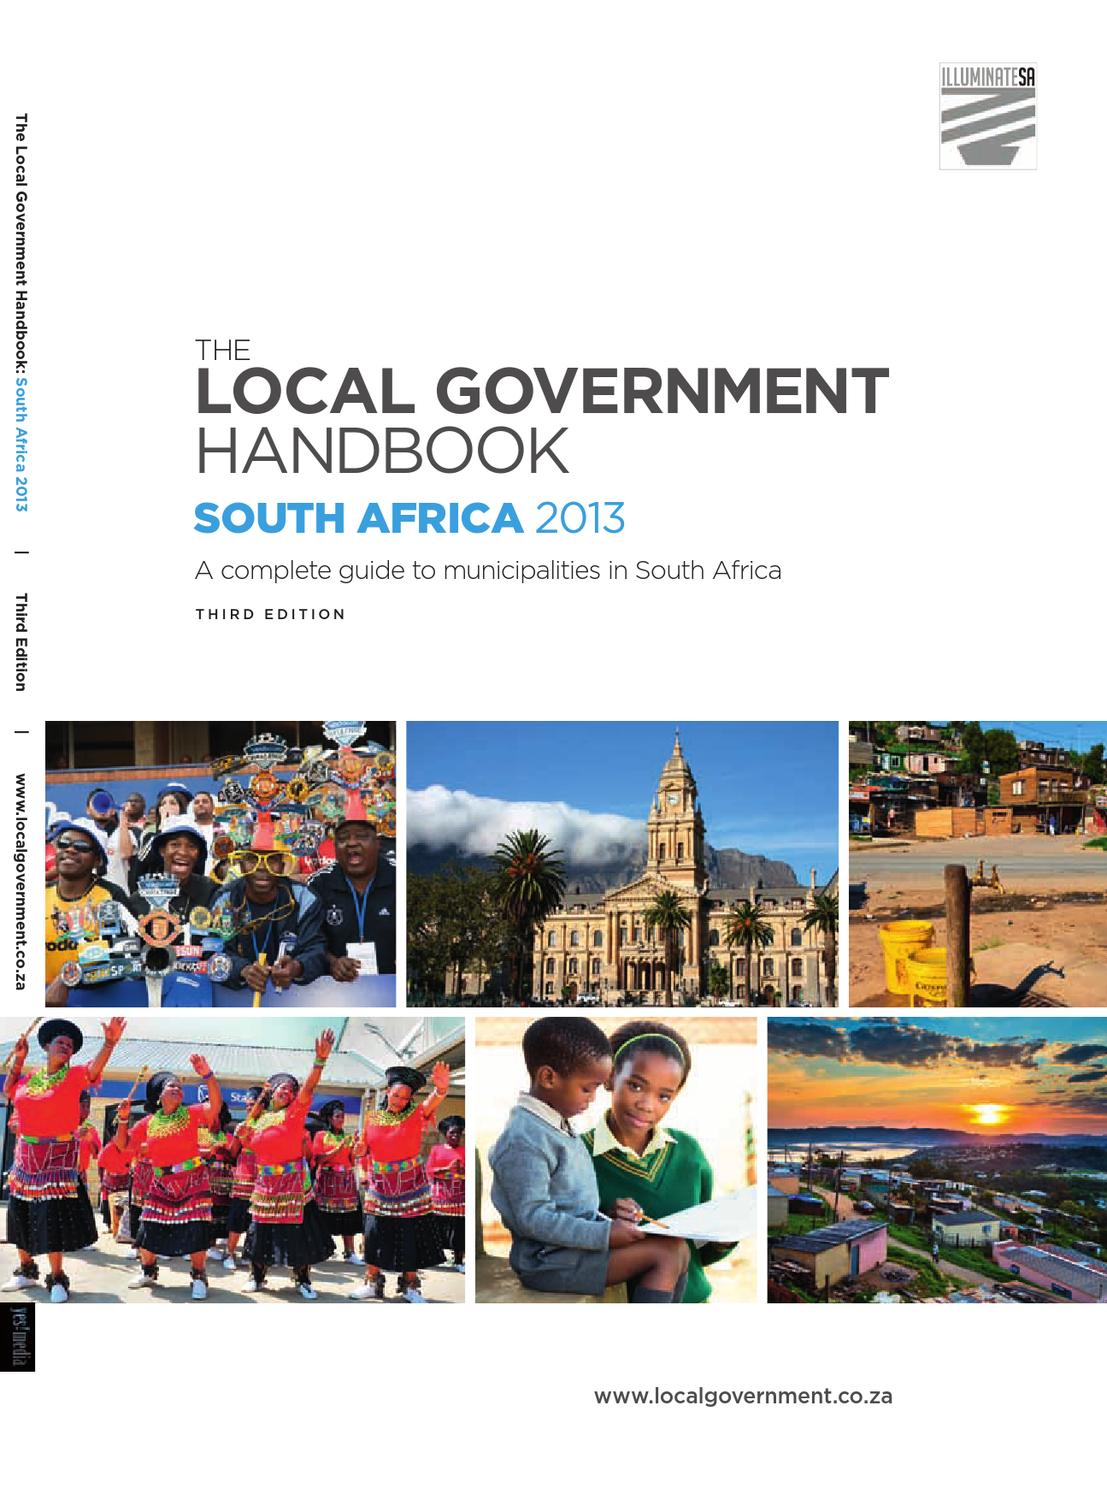 Local Government Handbook - South Africa 2013 by Yes Media